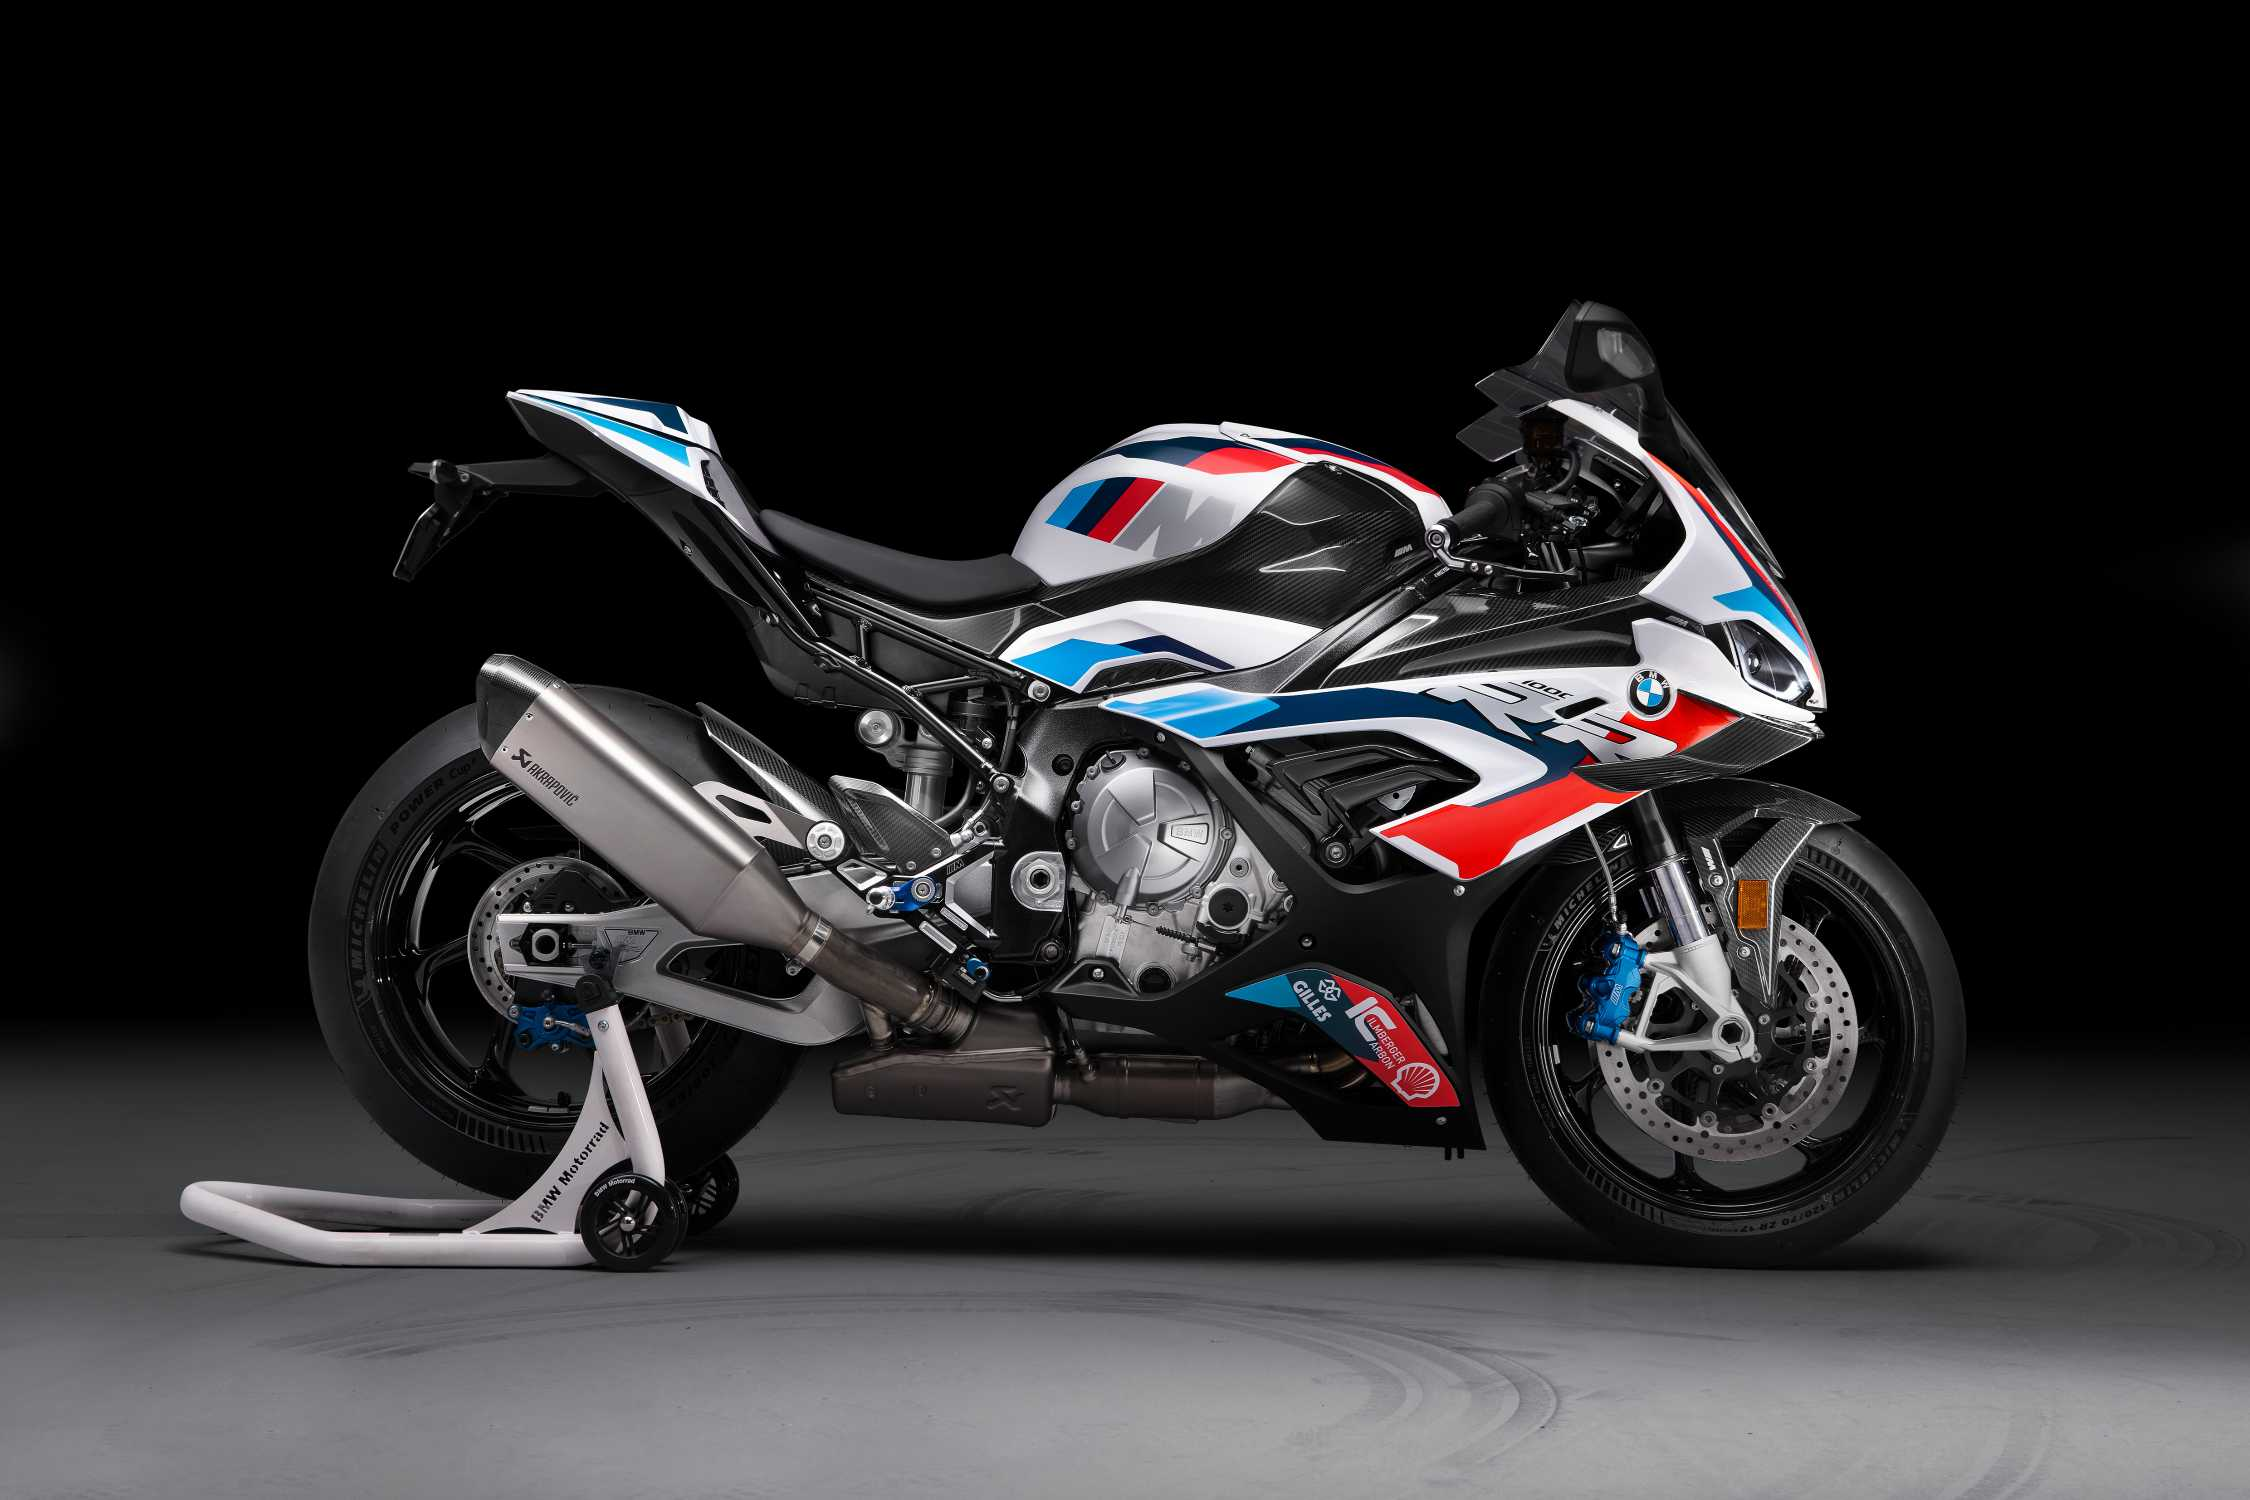 The new BMW M 1000 RR. (09/2020)